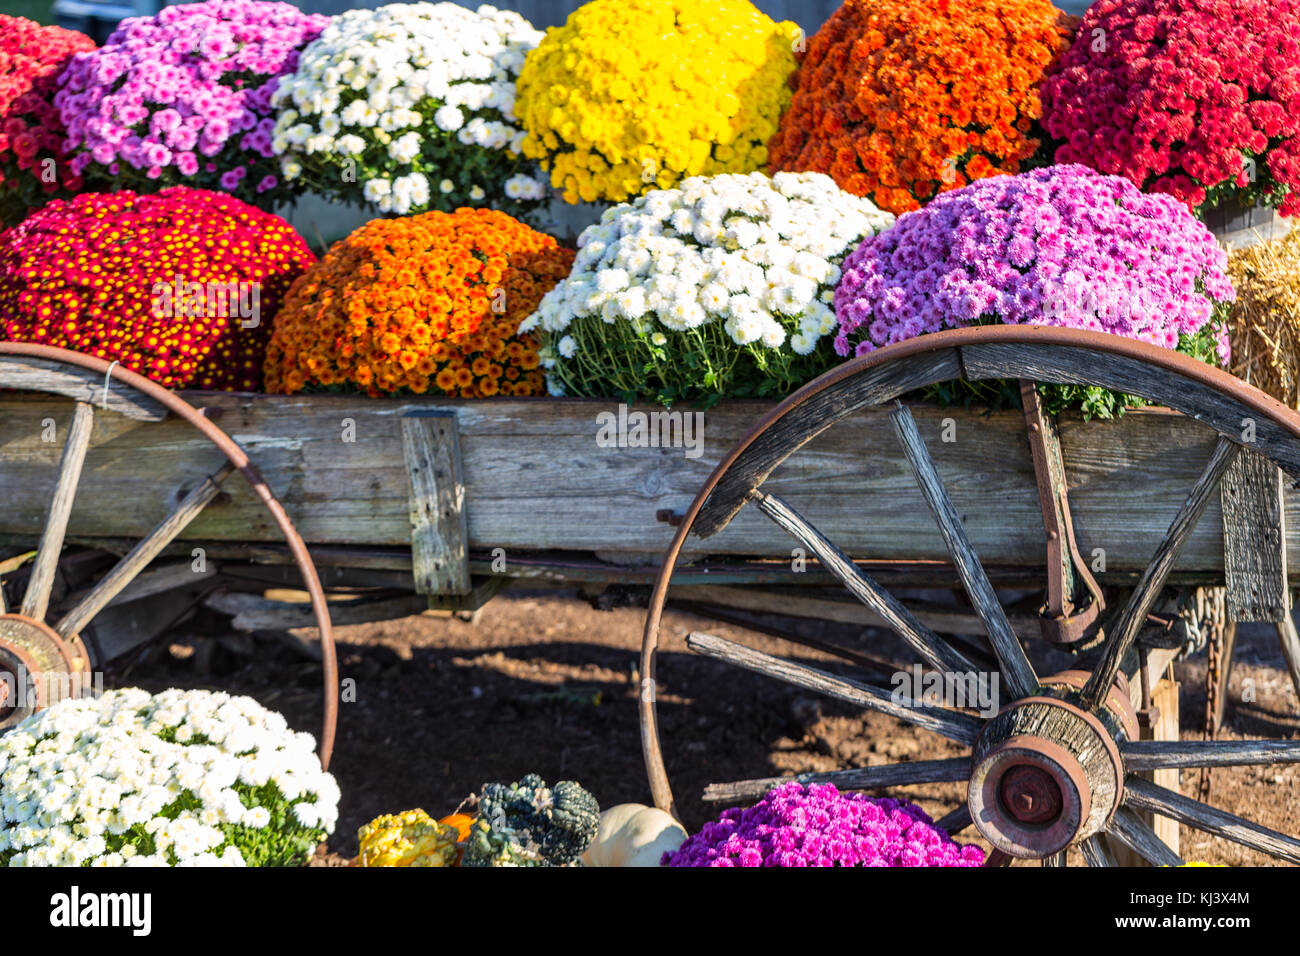 colorful fall mums on display in an old farm wagon stock photo